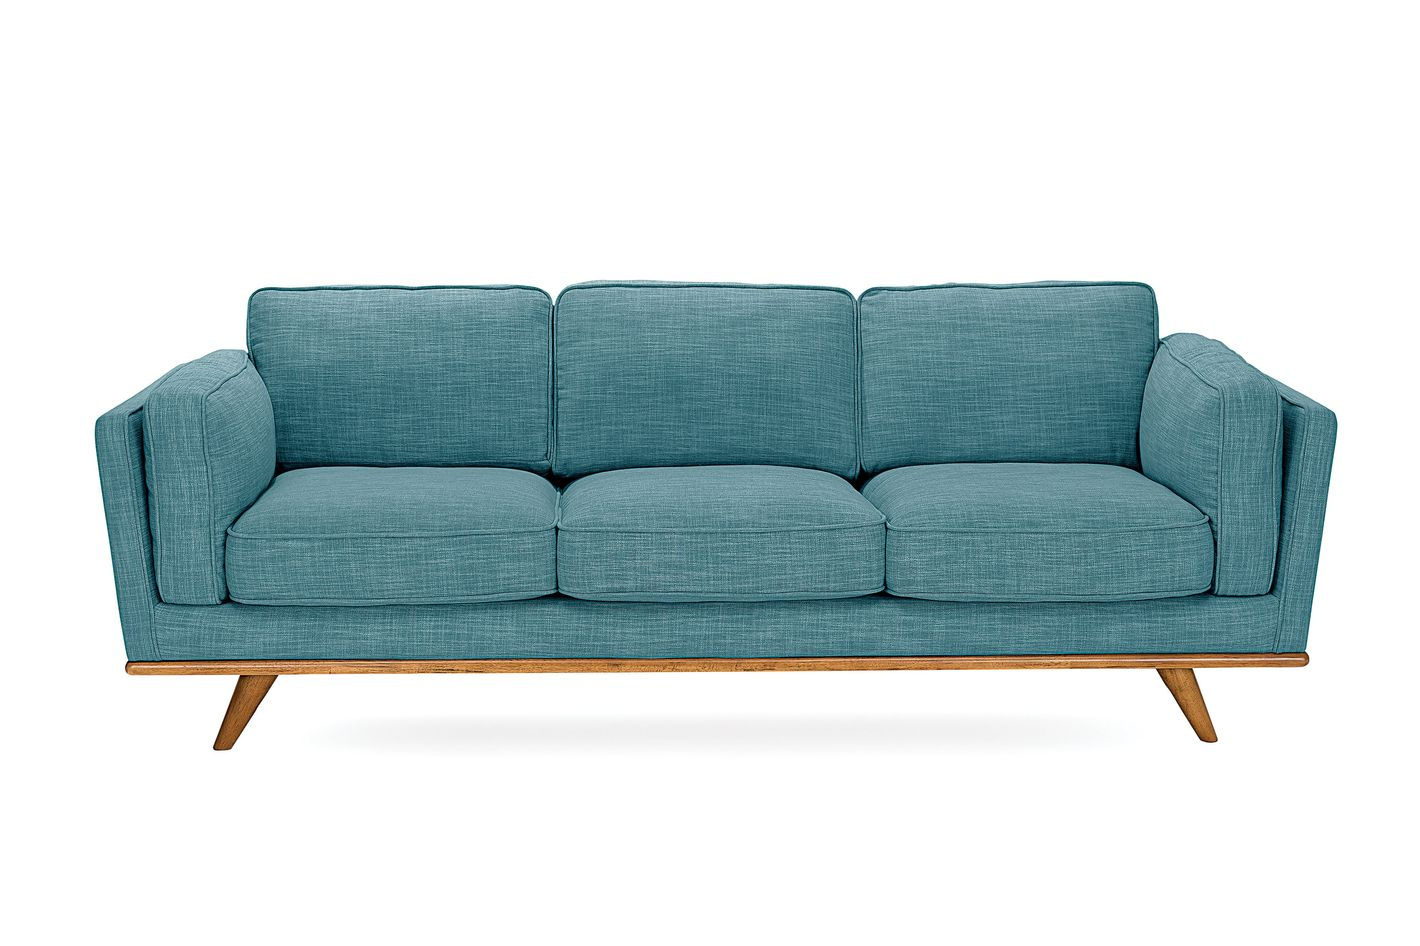 2. Article. Article Timber Sofa